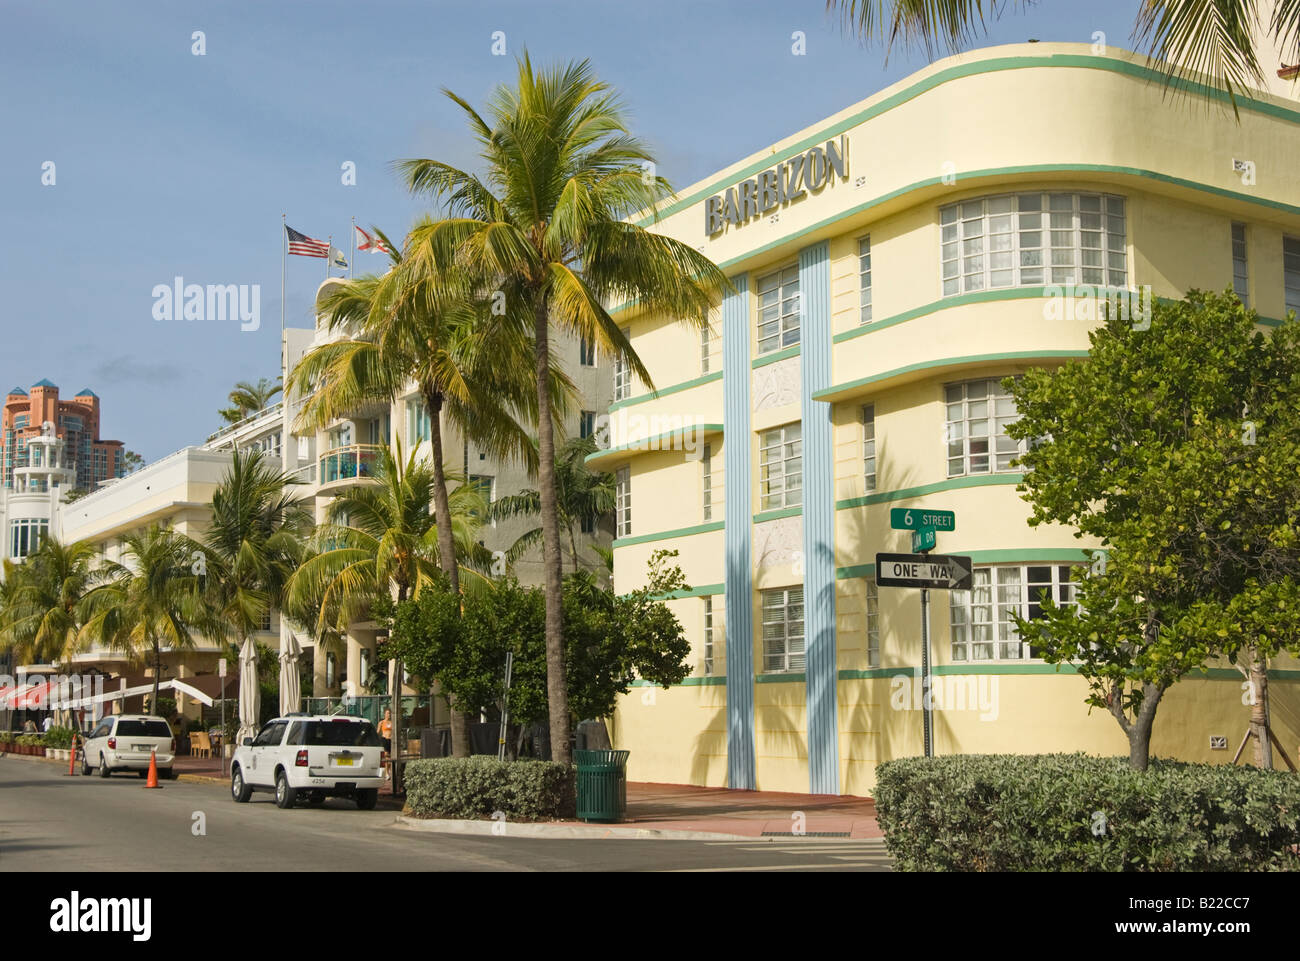 Barbizon Hotel on Ocean Drive in South Beach Miami This art deco hotel was designed by Henry Hohauser in 1937 - Stock Image